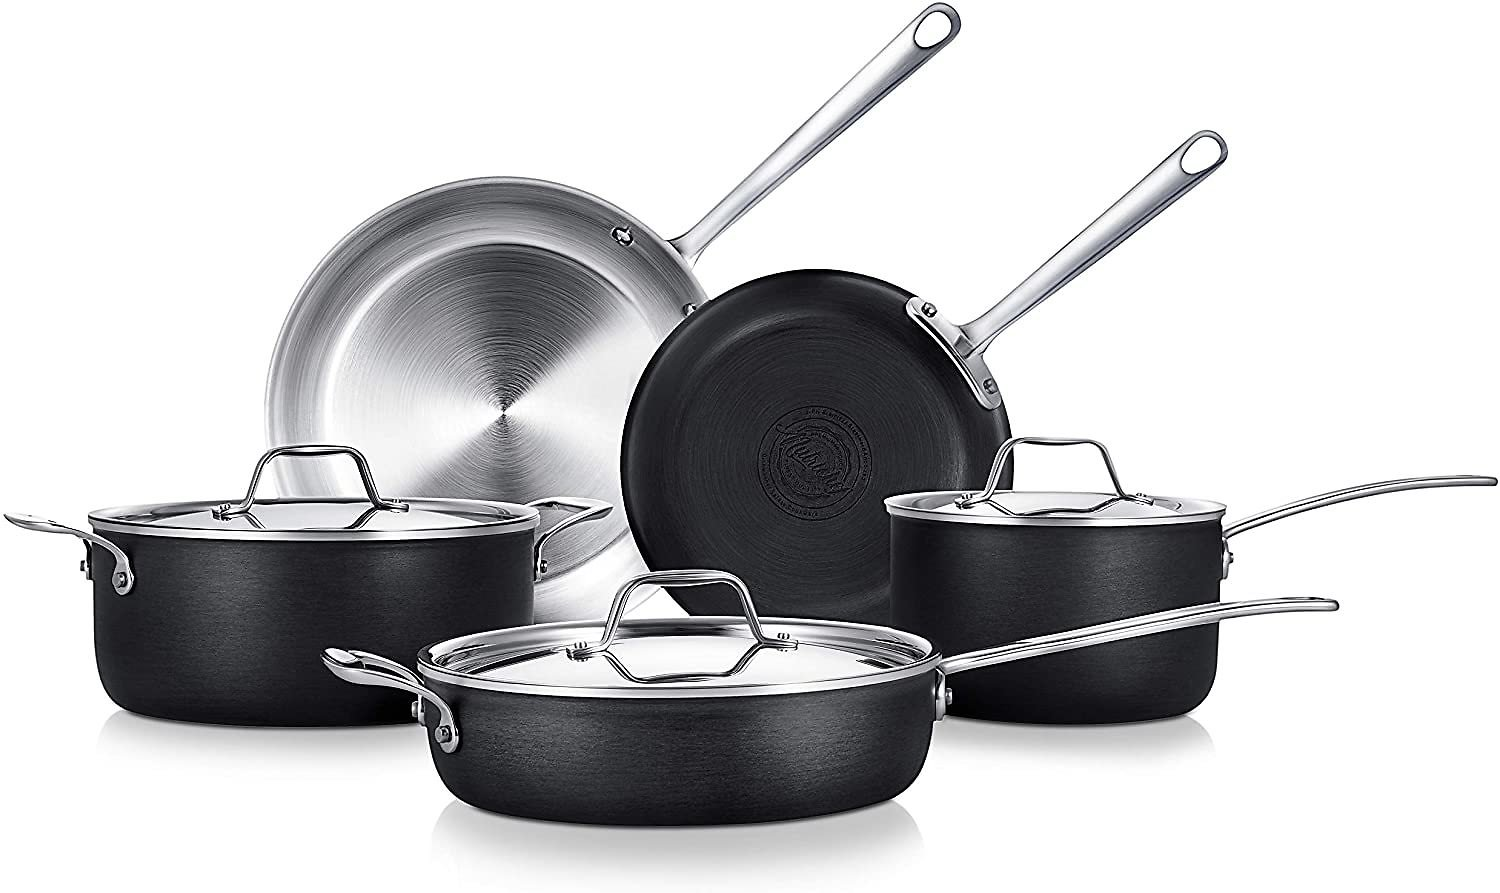 NutriChef Kit 8-Piece Steel-4-Ply Cookware W/Cast Stainless Steel Handle, 4-Ply Kitchenware Pots & Pans Set Stylish Kitchen